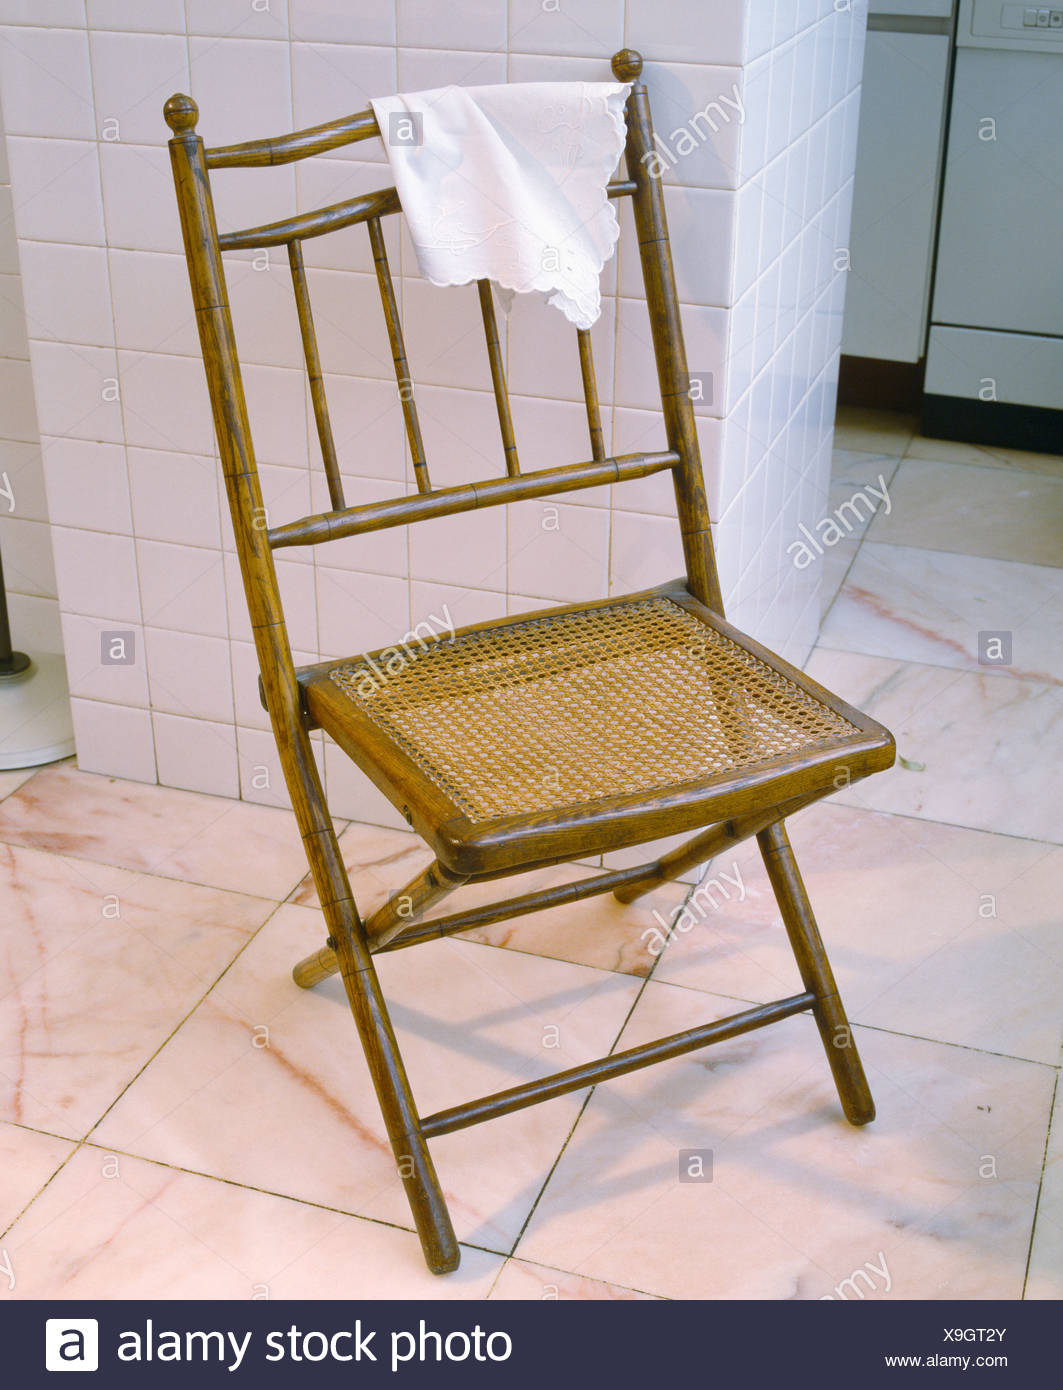 Excellent Antique Cane And Bamboo Folding Chair On White Tiled Floor Ncnpc Chair Design For Home Ncnpcorg